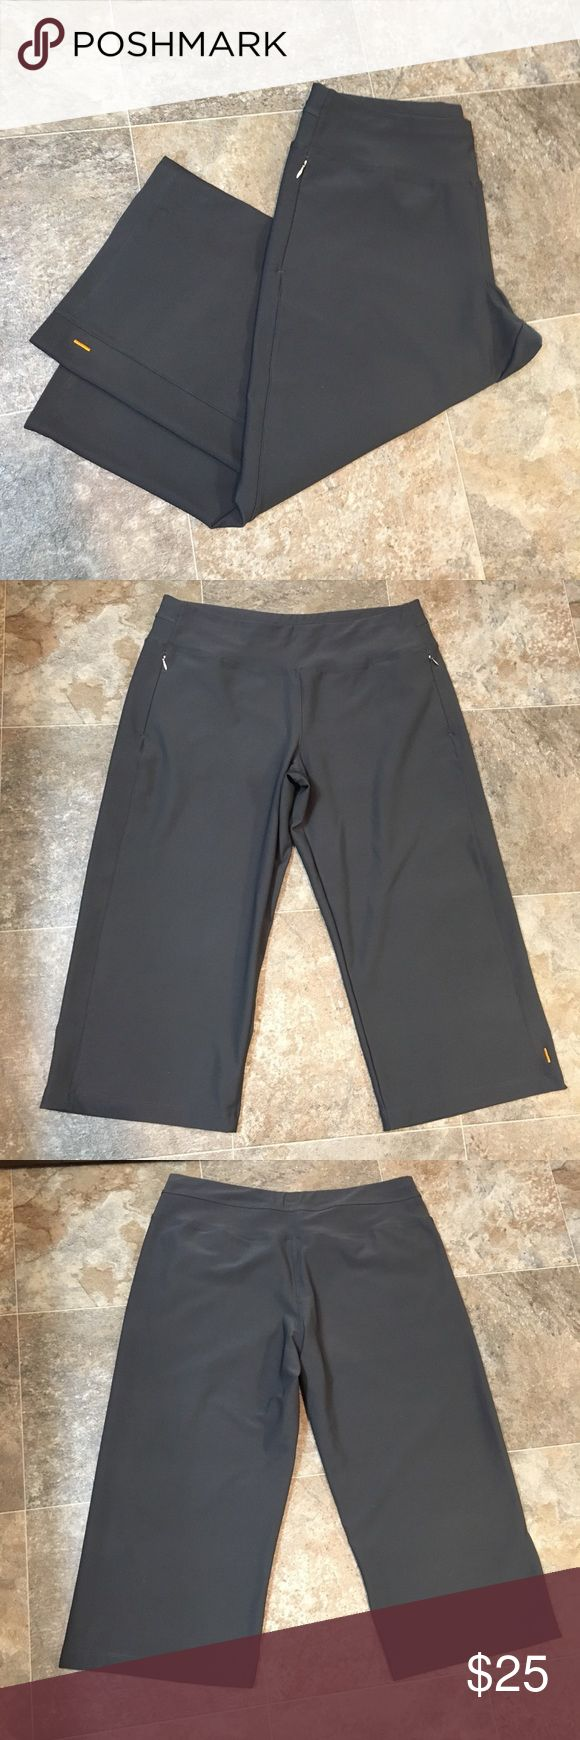 Lucy grey athletic shorts Women's grey Lucy athletic shorts. These shorts have a pocket on each side. They have a stretchy waistband and are a looser fit throughout the rest of them.   🌸BUNDLE AND SAVE  🌸NO TRADES 🌸REASONABLE OFFERS CONSIDERED  🌸FEEL FREE TO ASK QUESTIONS 🌸I DO NOT MODEL Lucy Shorts